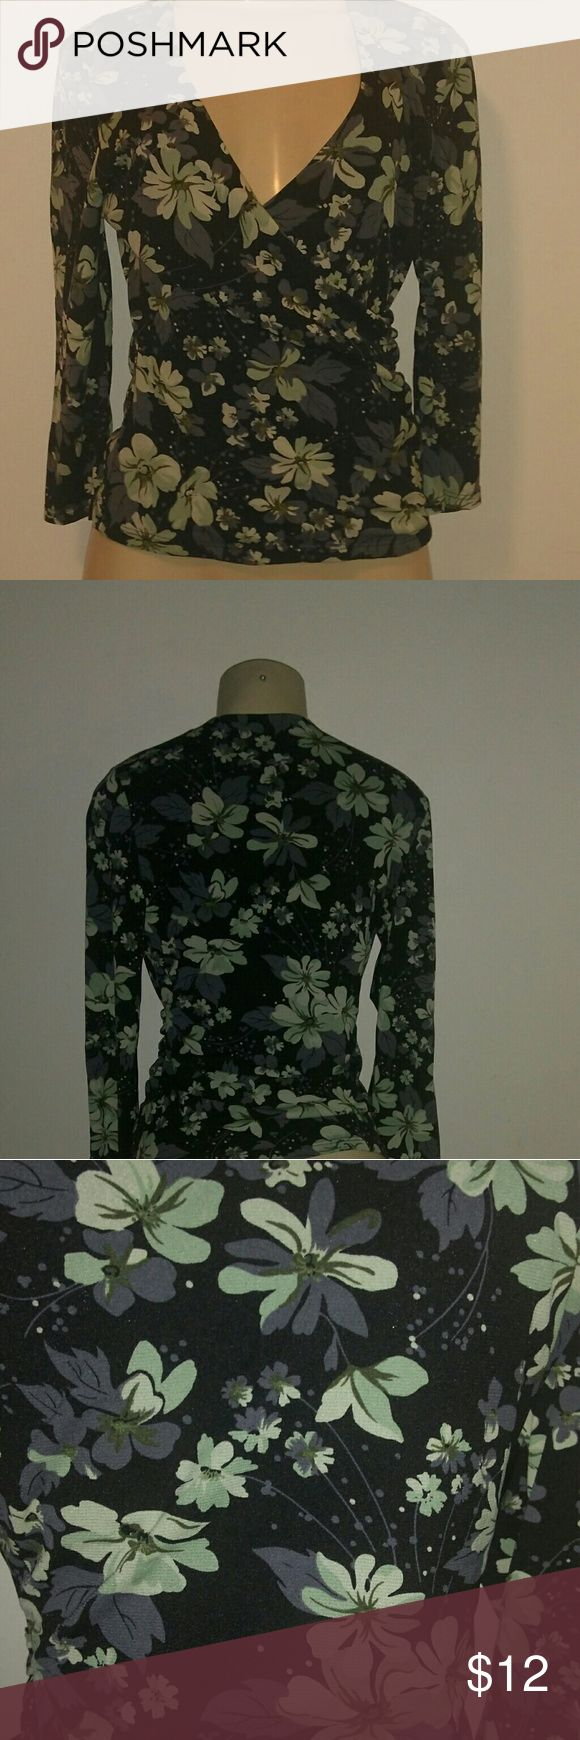 M Geoffrey Beene shirt blouse Great condition. Has some stretch. Geoffrey Beene Tops Blouses